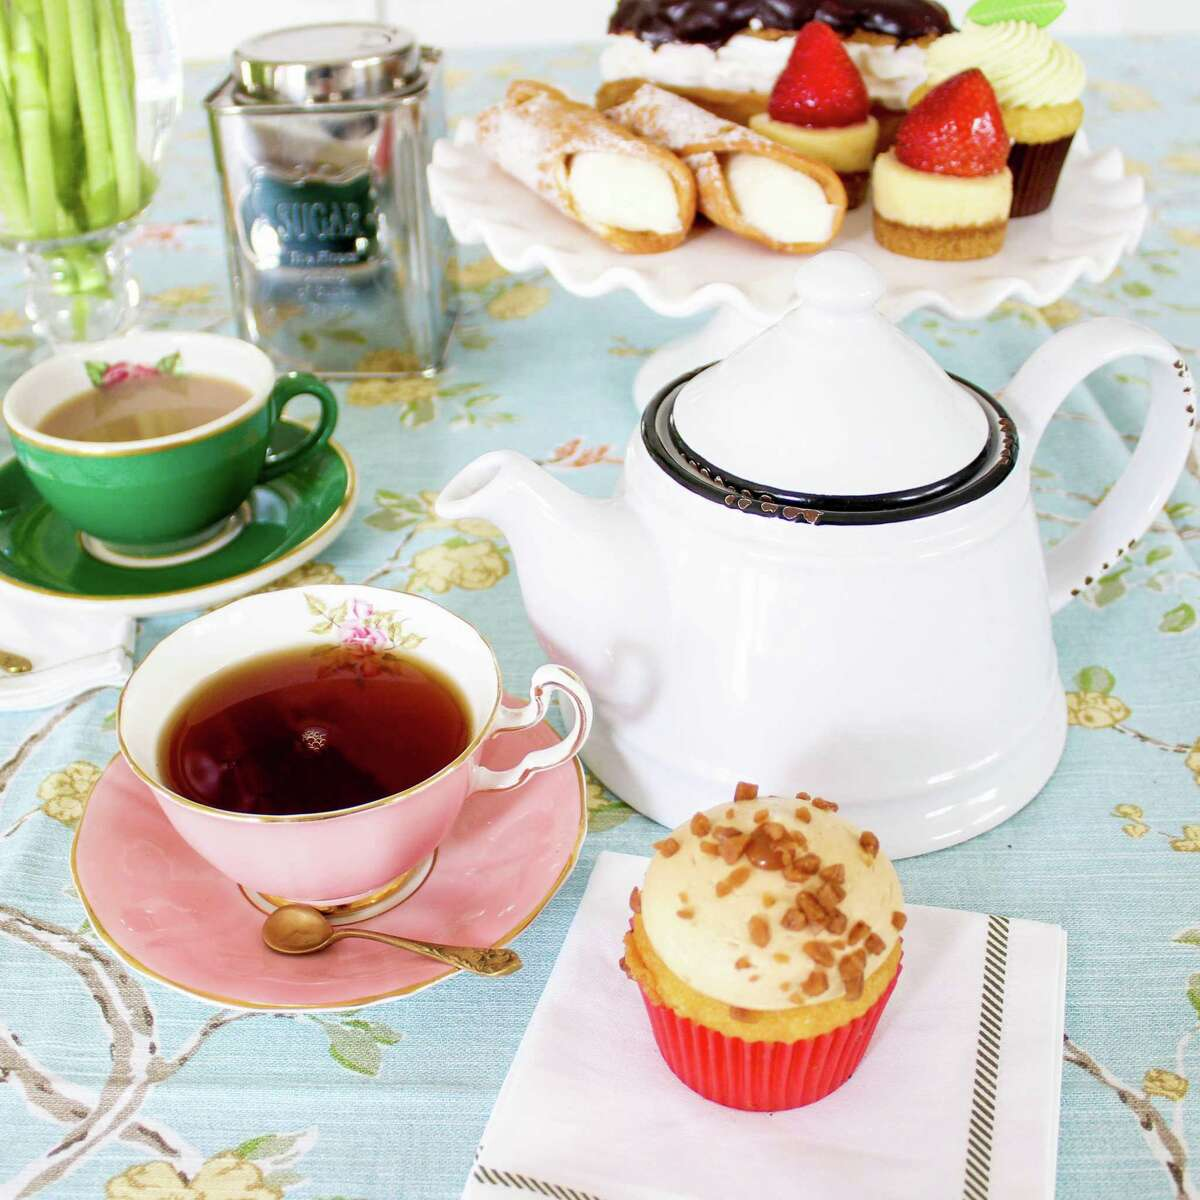 Celebrate Mother's Day and treat her like a queen at high tea.